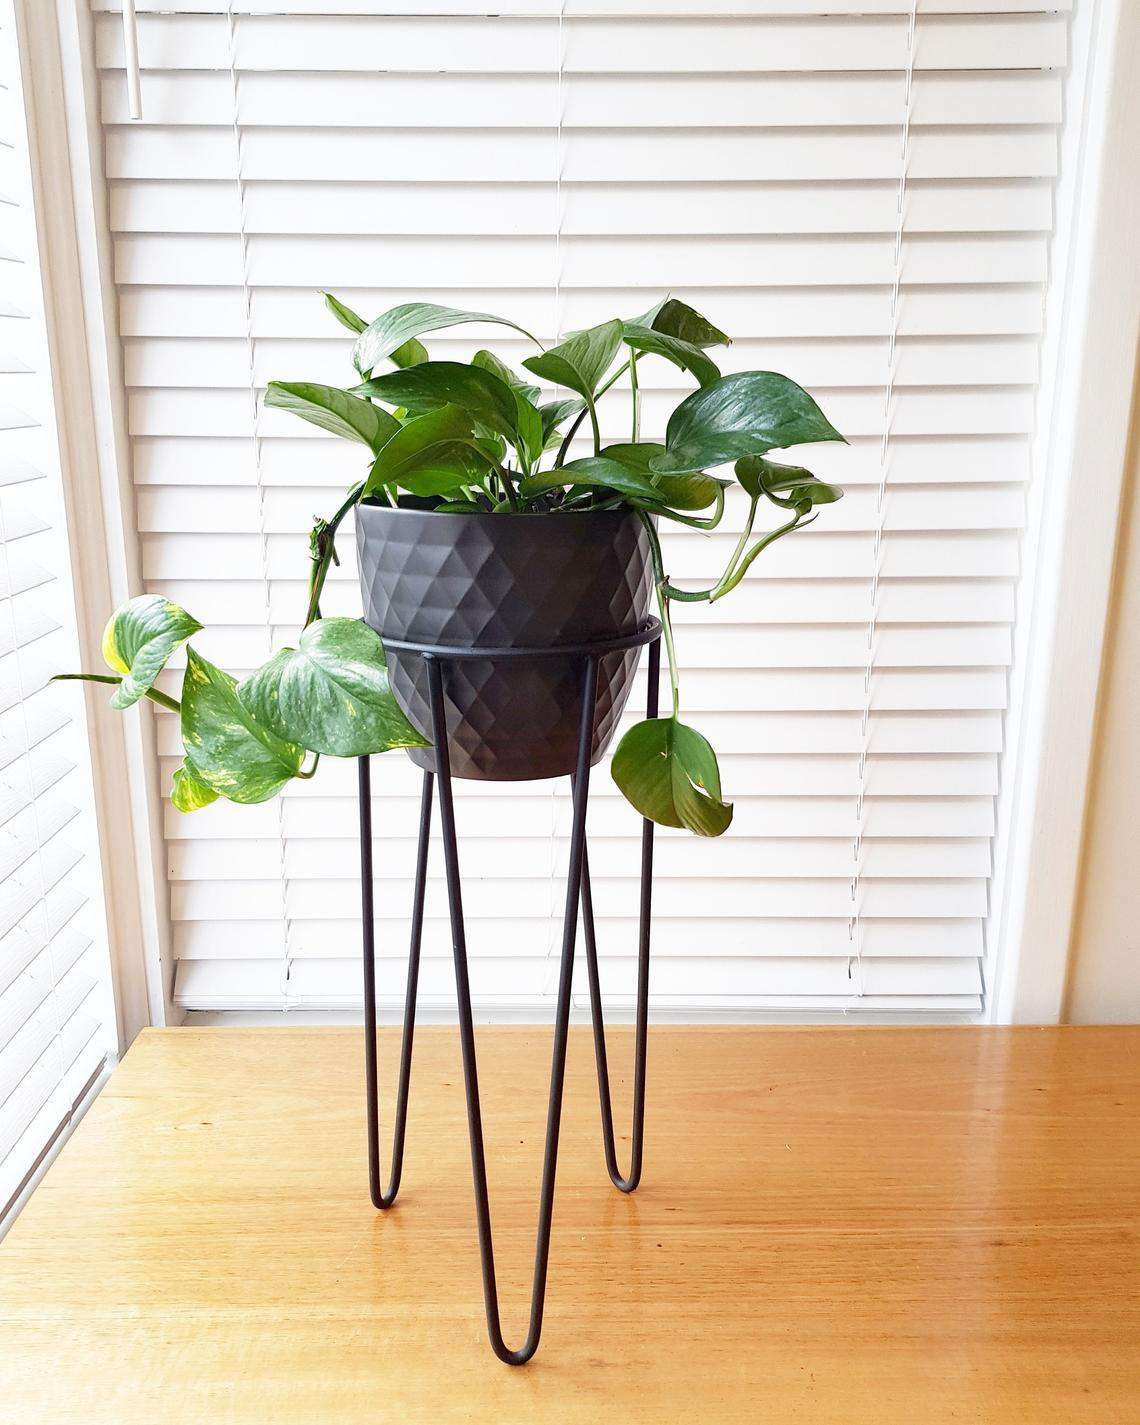 Hairpin leg plant stand